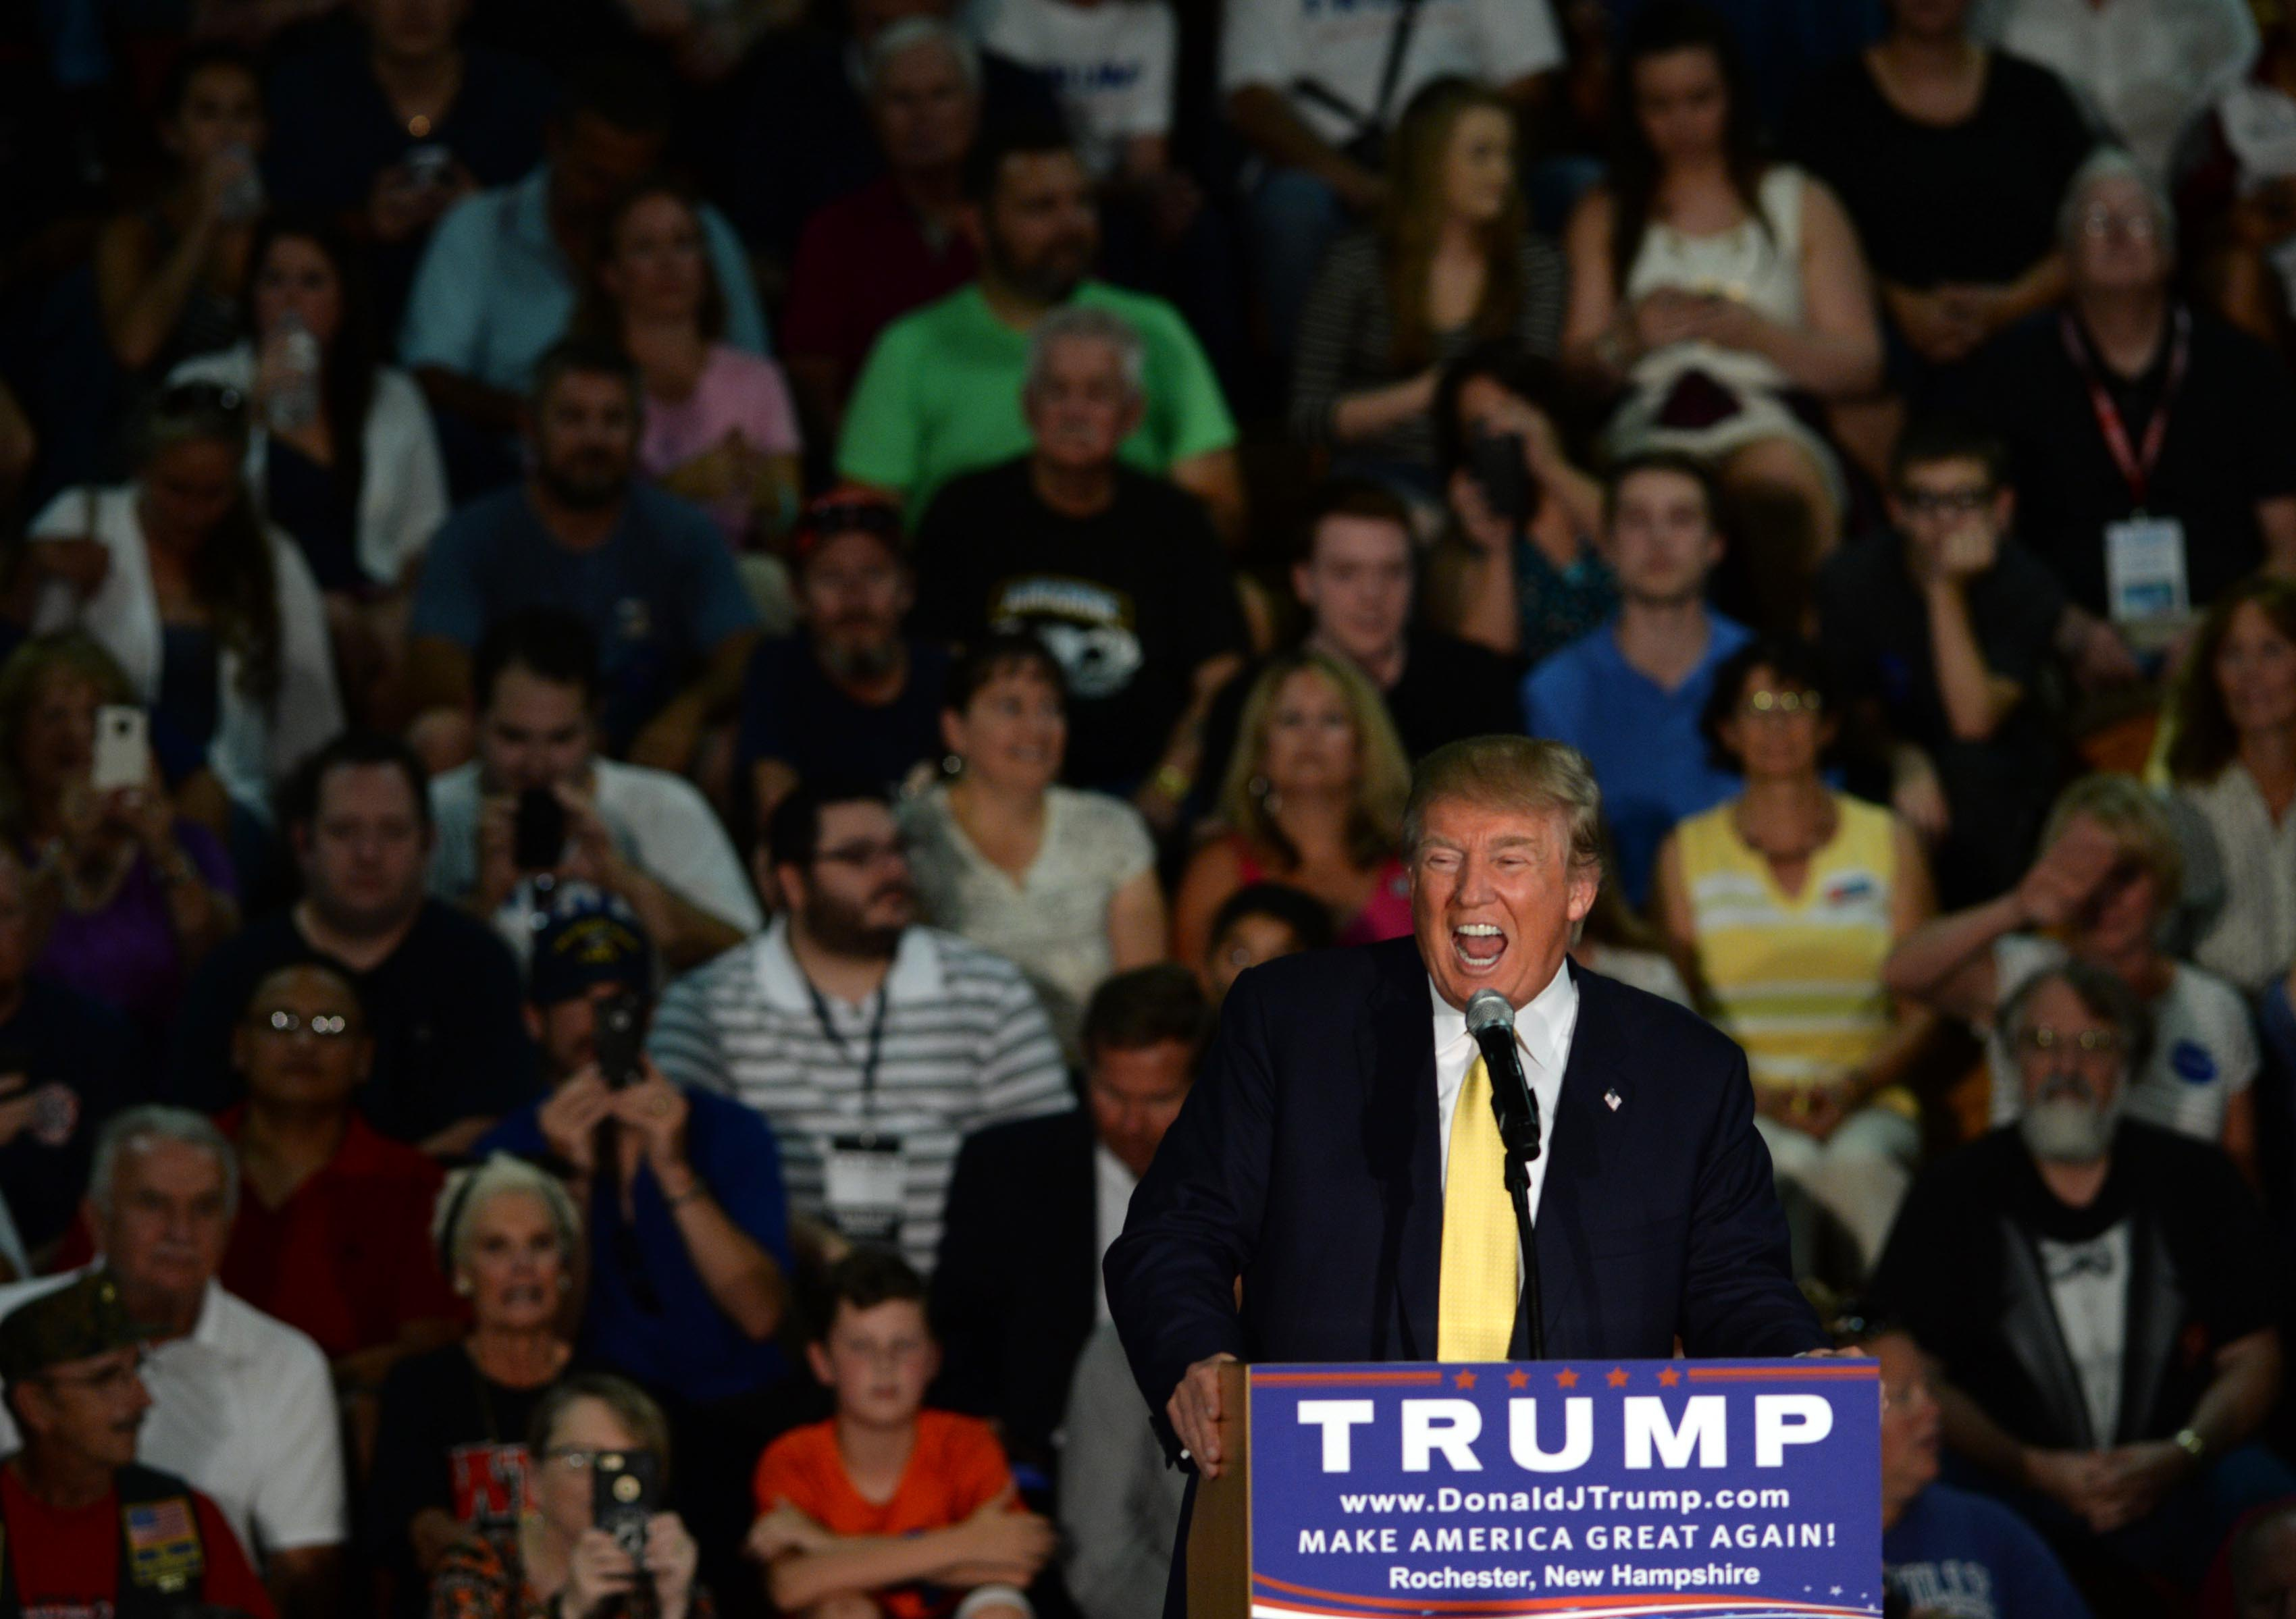 new hampshire muslim New hampshire voters are in love with donald trump's plan to temporarily ban all muslim immigration into the us exit polls of republican primary voters on tuesday showed strong support – 66 percent – in favor of the immigration component of trump's strategy to combat terrorism the .